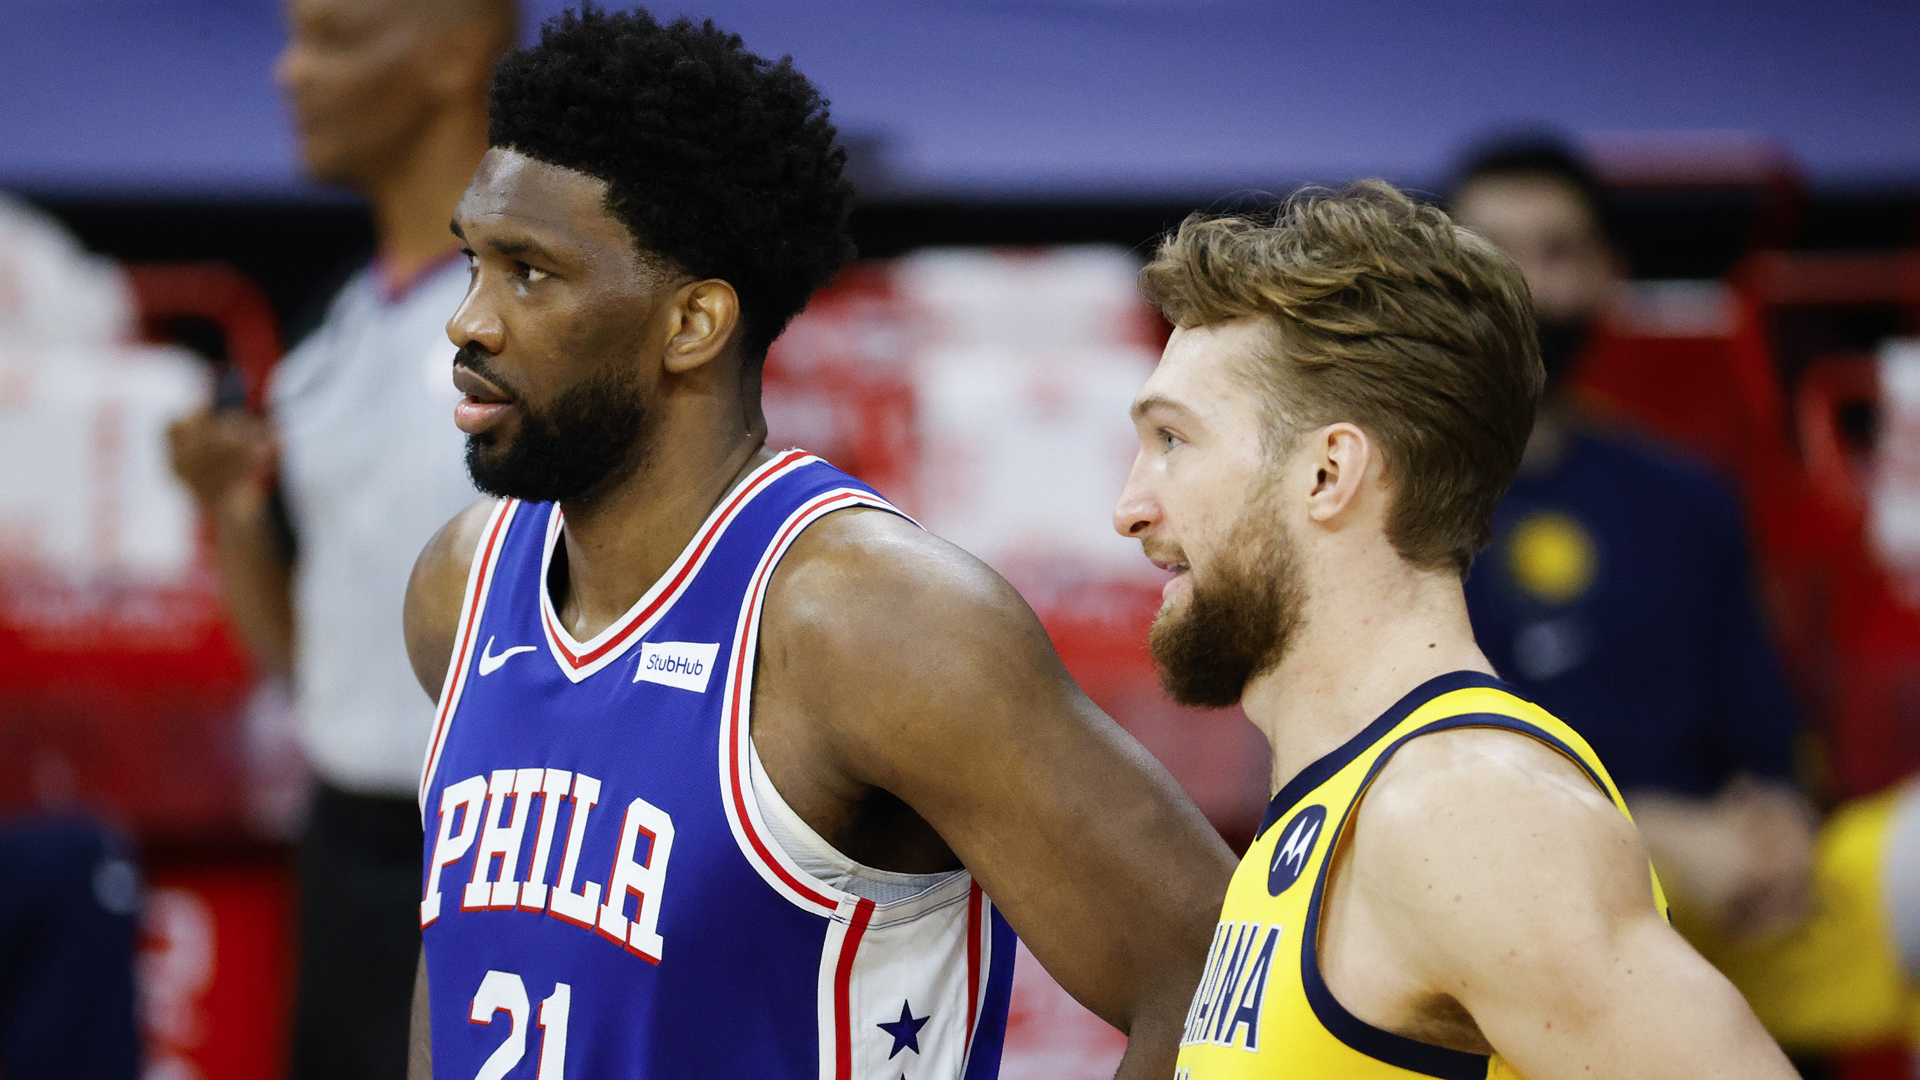 Game Recap: Sixers 130, Pacers 114